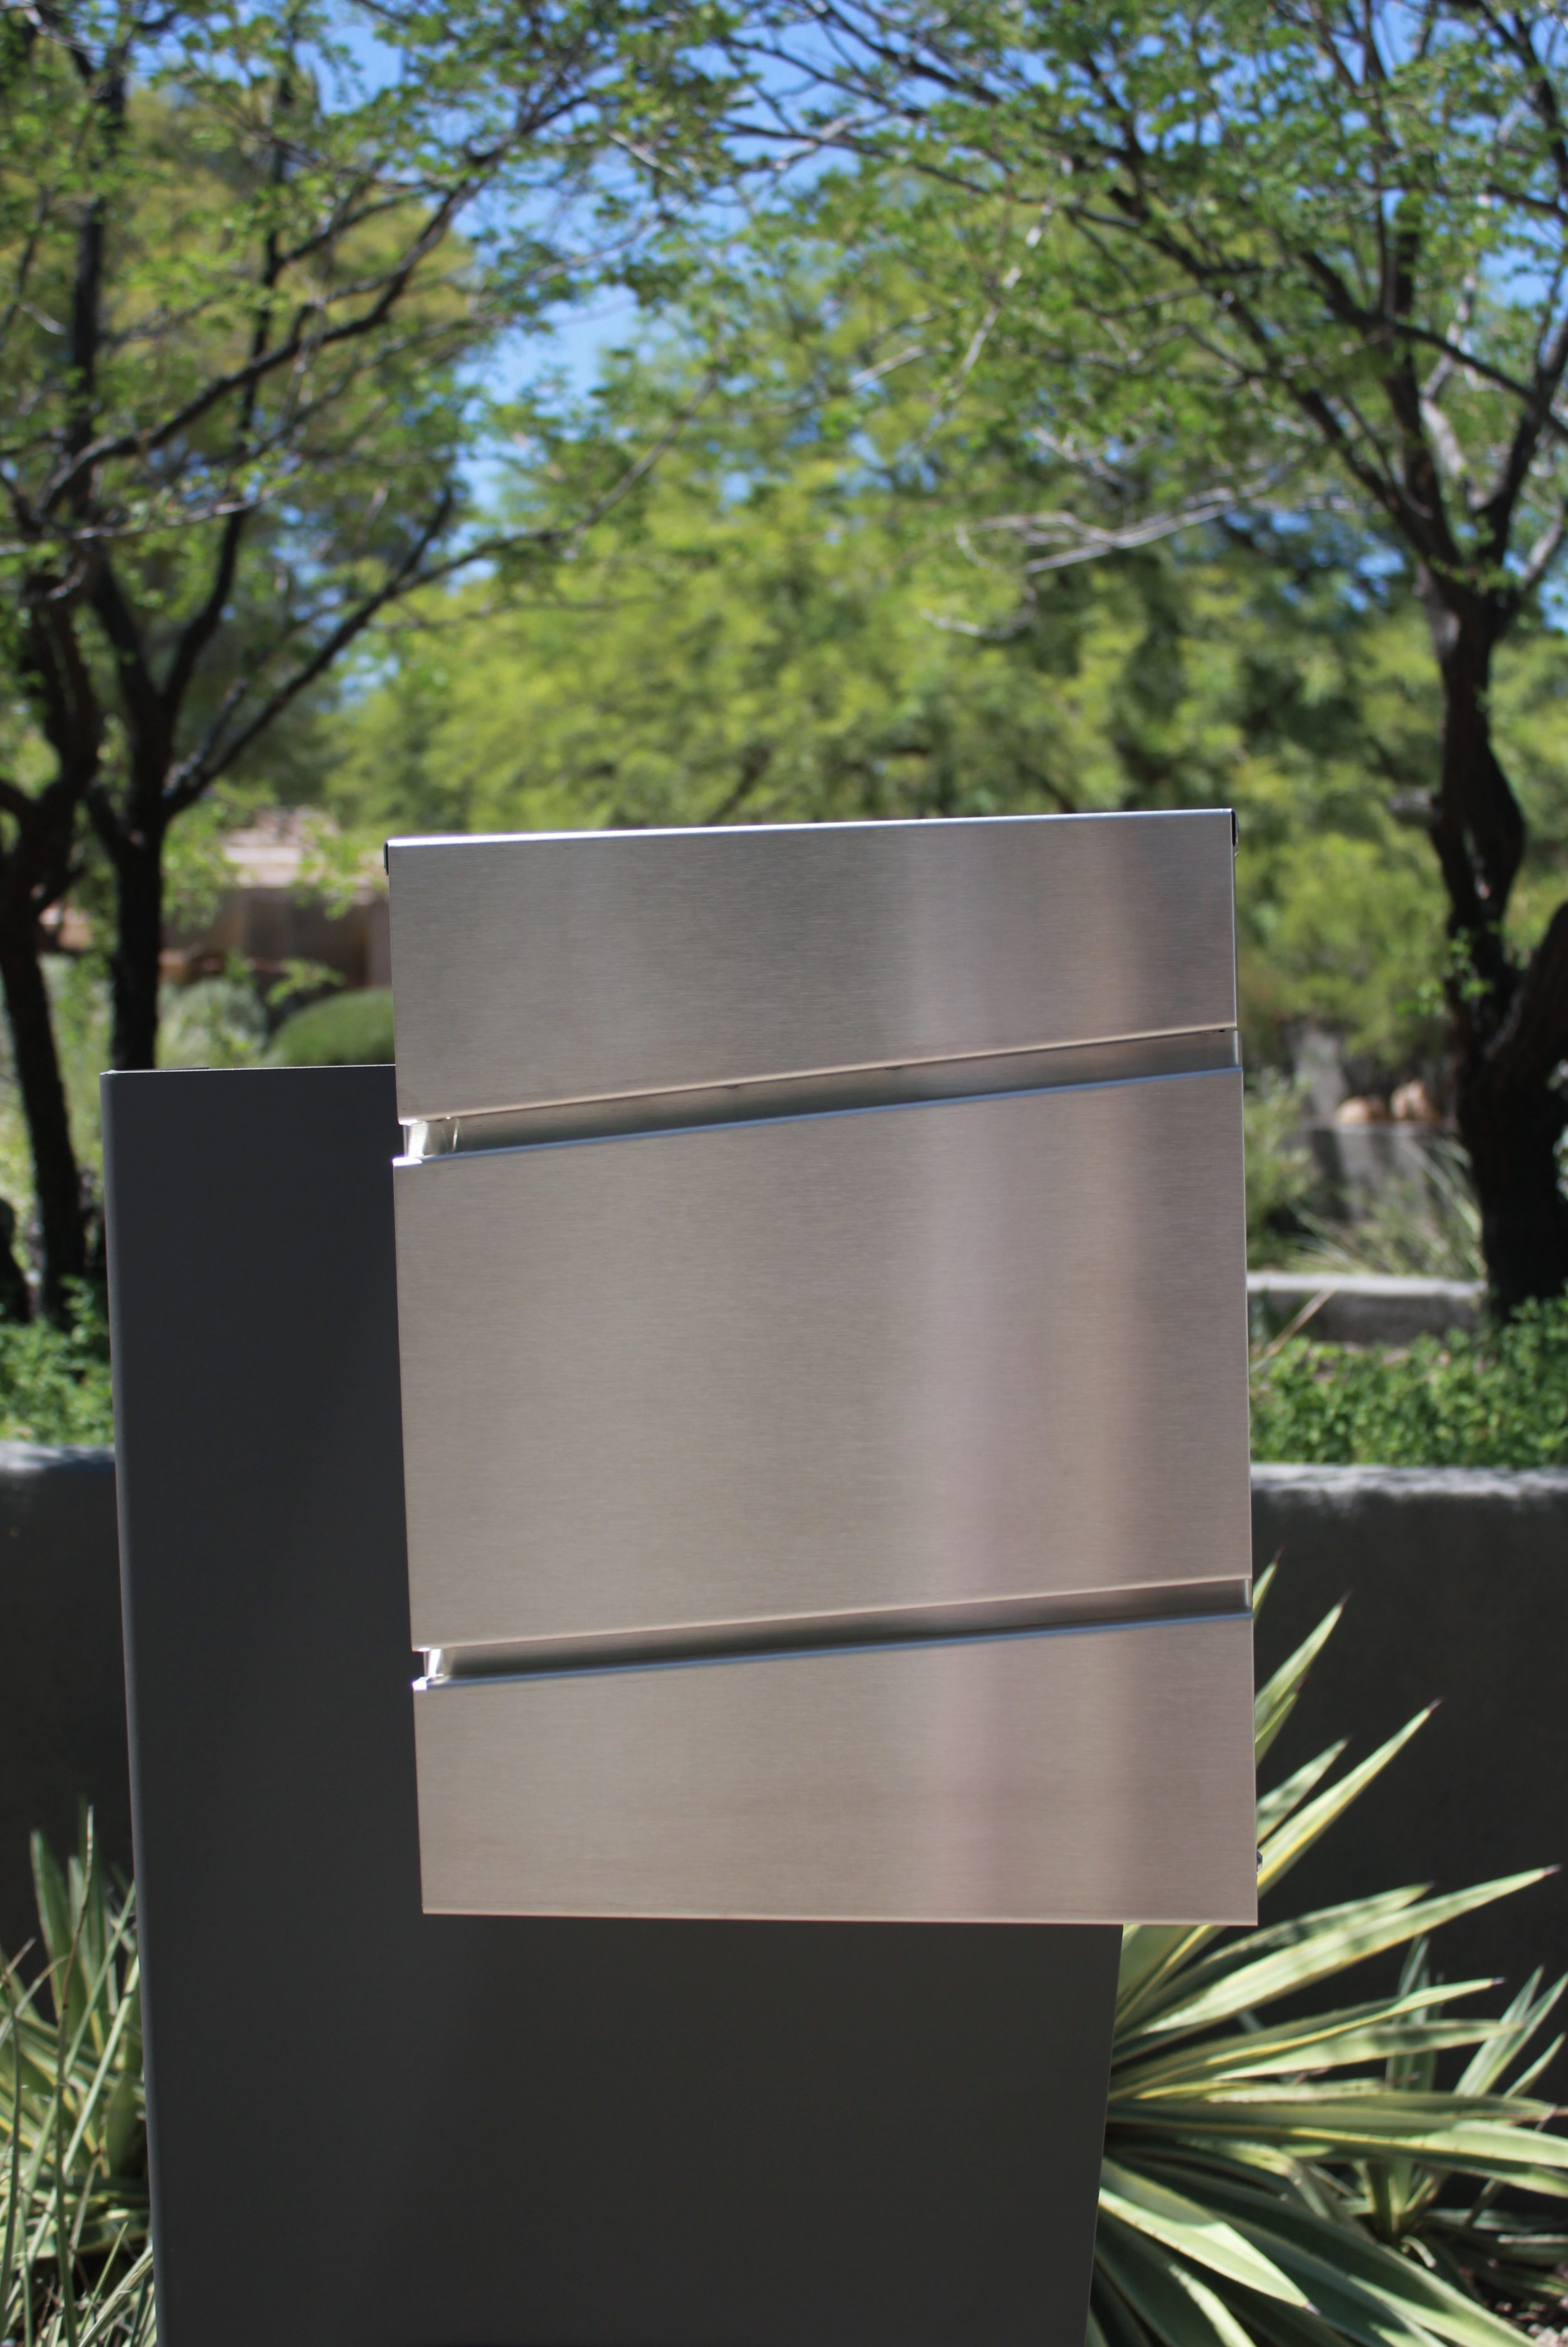 Ideal The Metro - Modern Stainless Steel Mailbox, Wall Mounted or Curbside AJ21